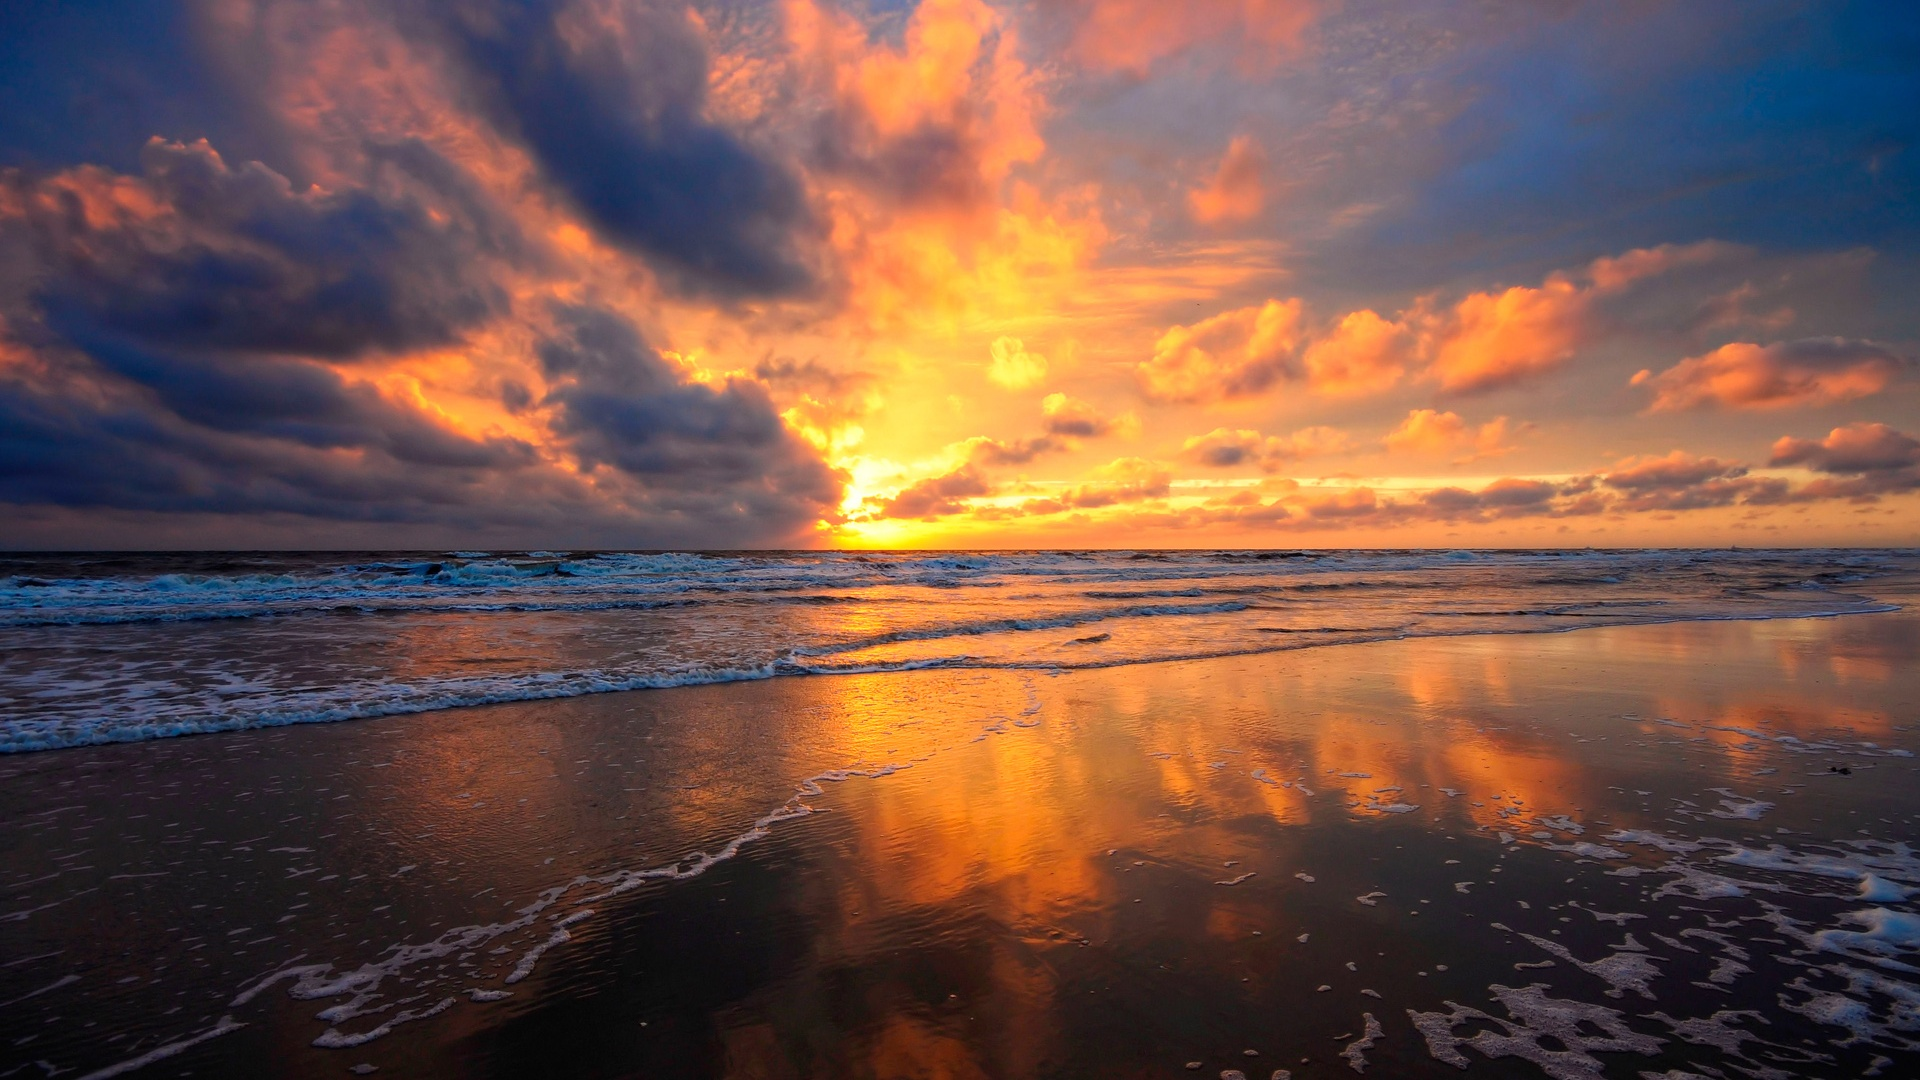 Wallpaper Beach Sea Water Fire Red Clouds Sky Beautiful